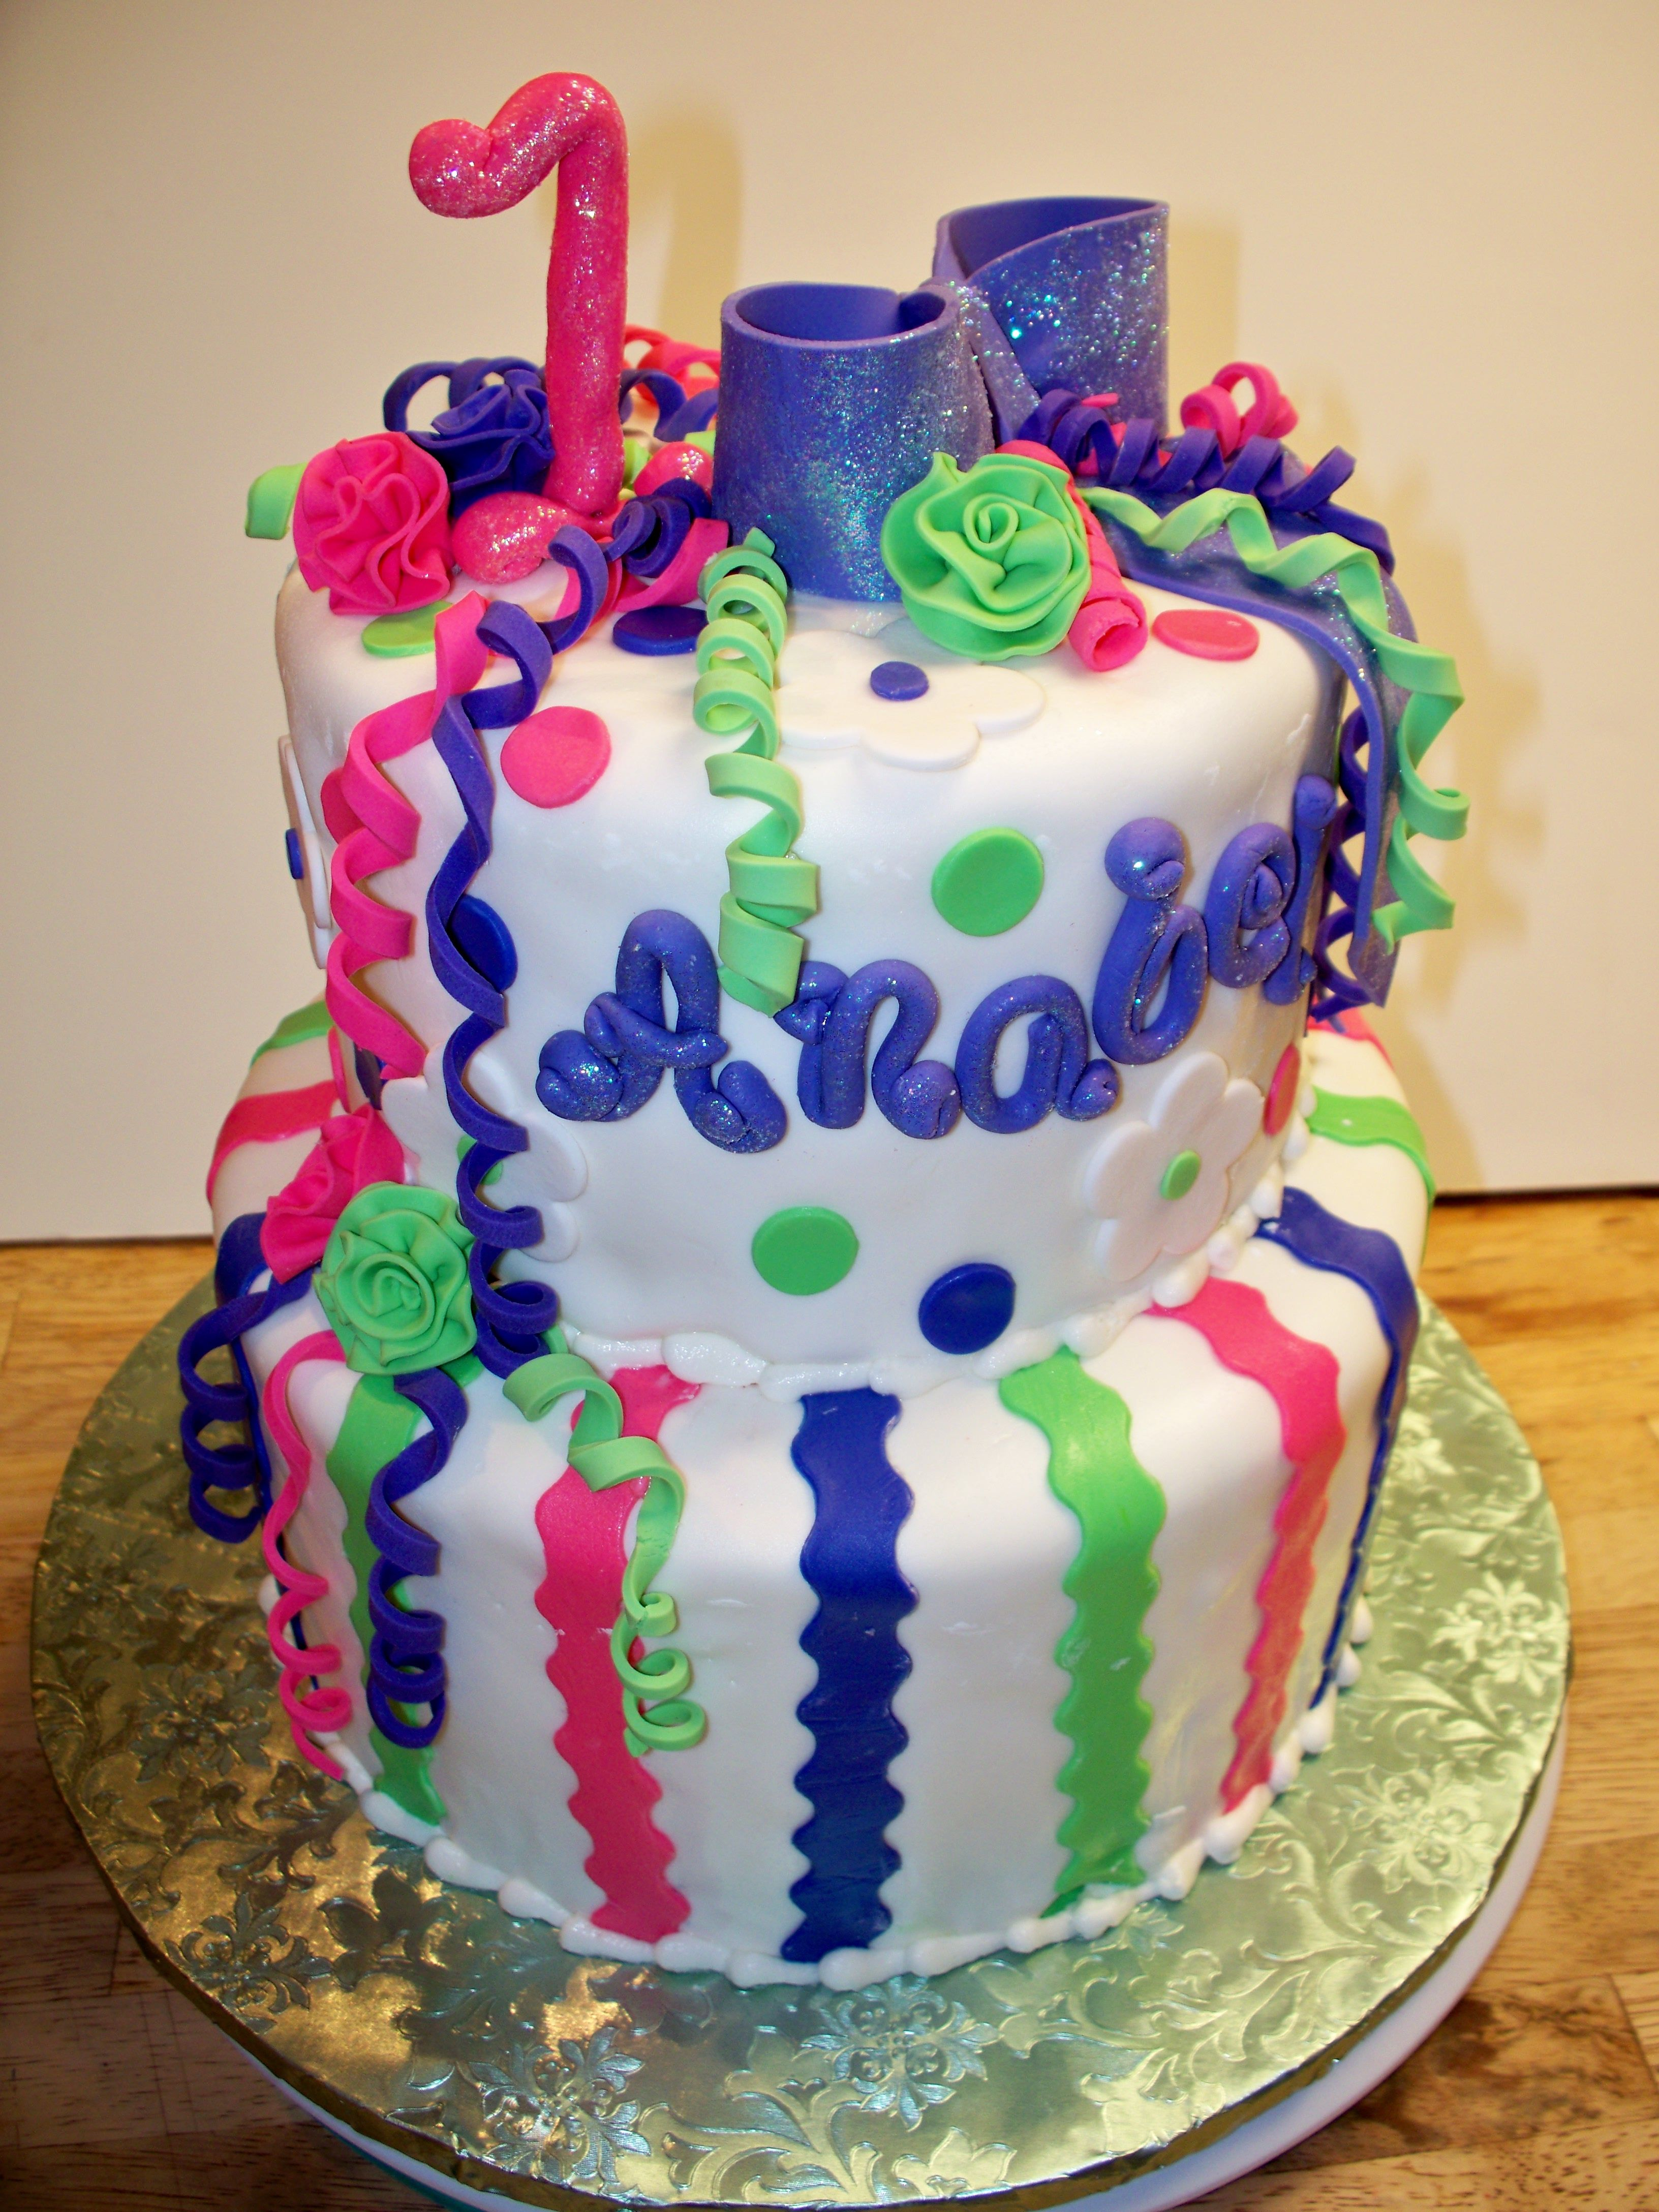 I loved making this cake so cute decorated it myself by